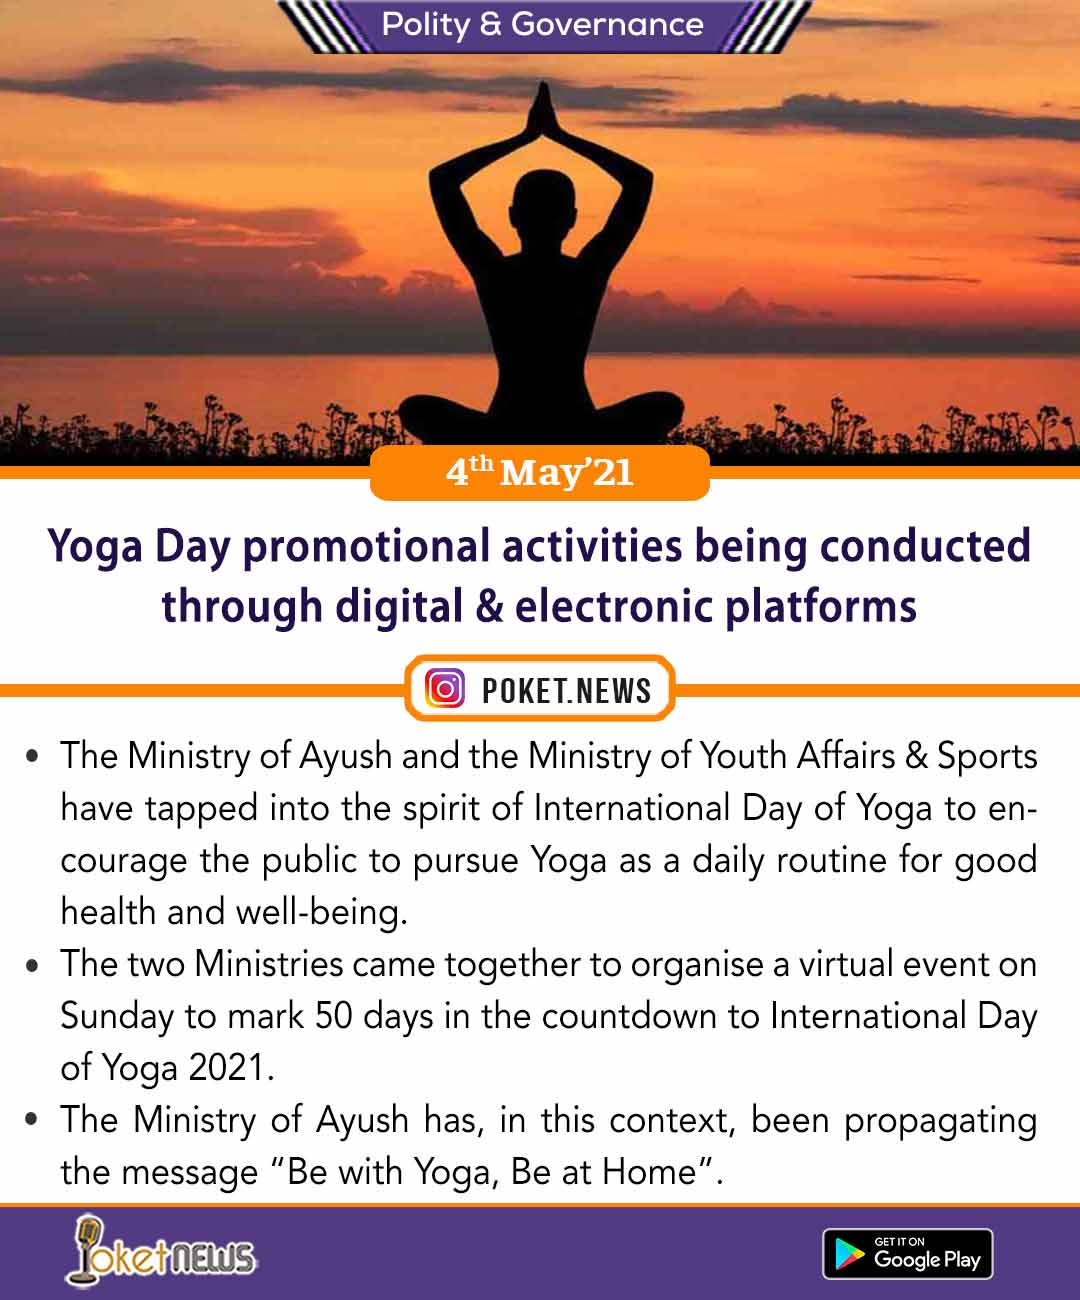 Yoga Day promotional activities being conducted through digital & electronic platforms